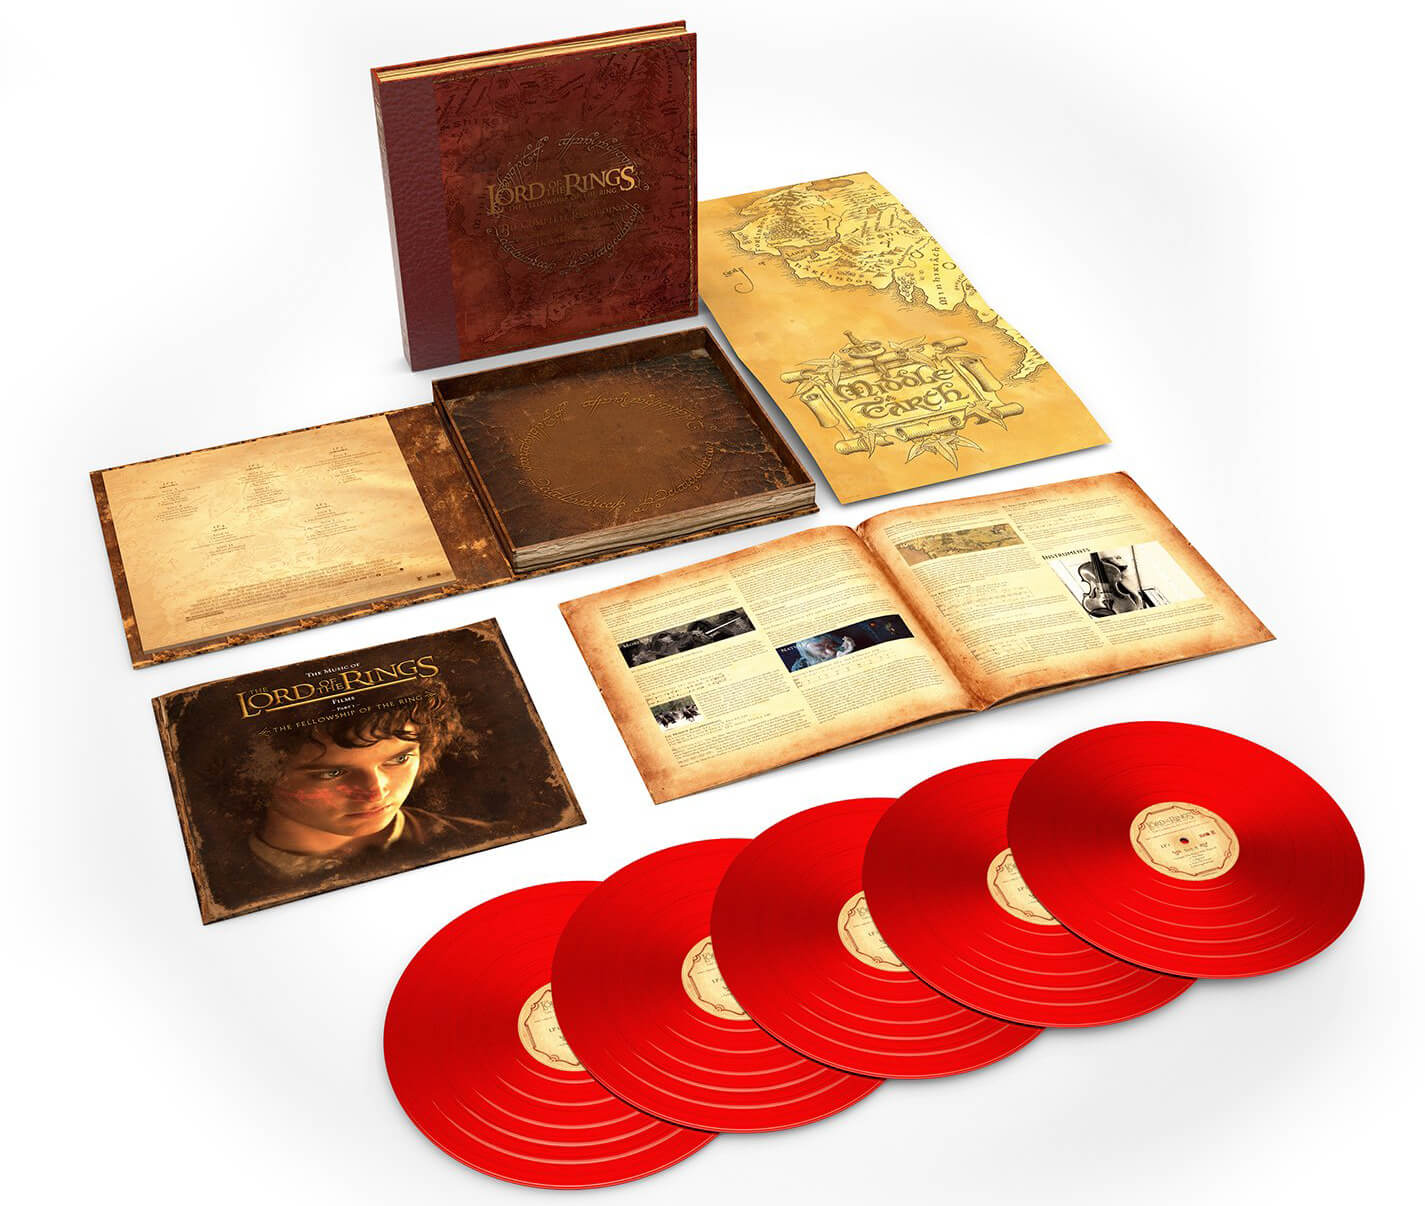 2018 - Vinil - Lord Of The Rings Fellowship Of The Ring 5LP DV7GIxWX4AEKVVW-1-1